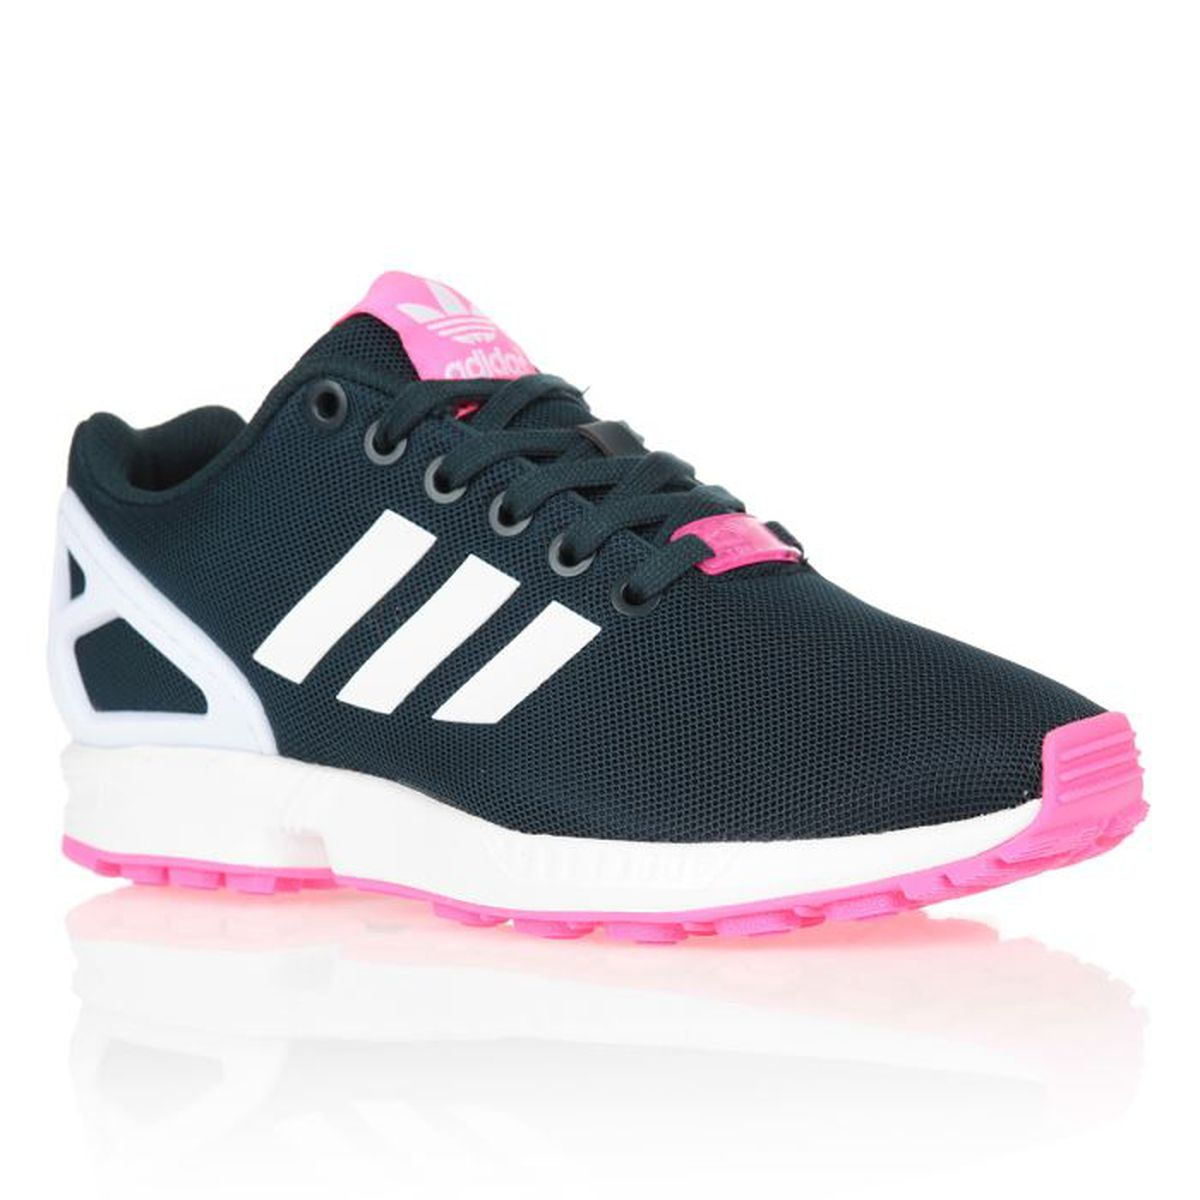 chaussure adidas zx flux pas cher femme. Black Bedroom Furniture Sets. Home Design Ideas